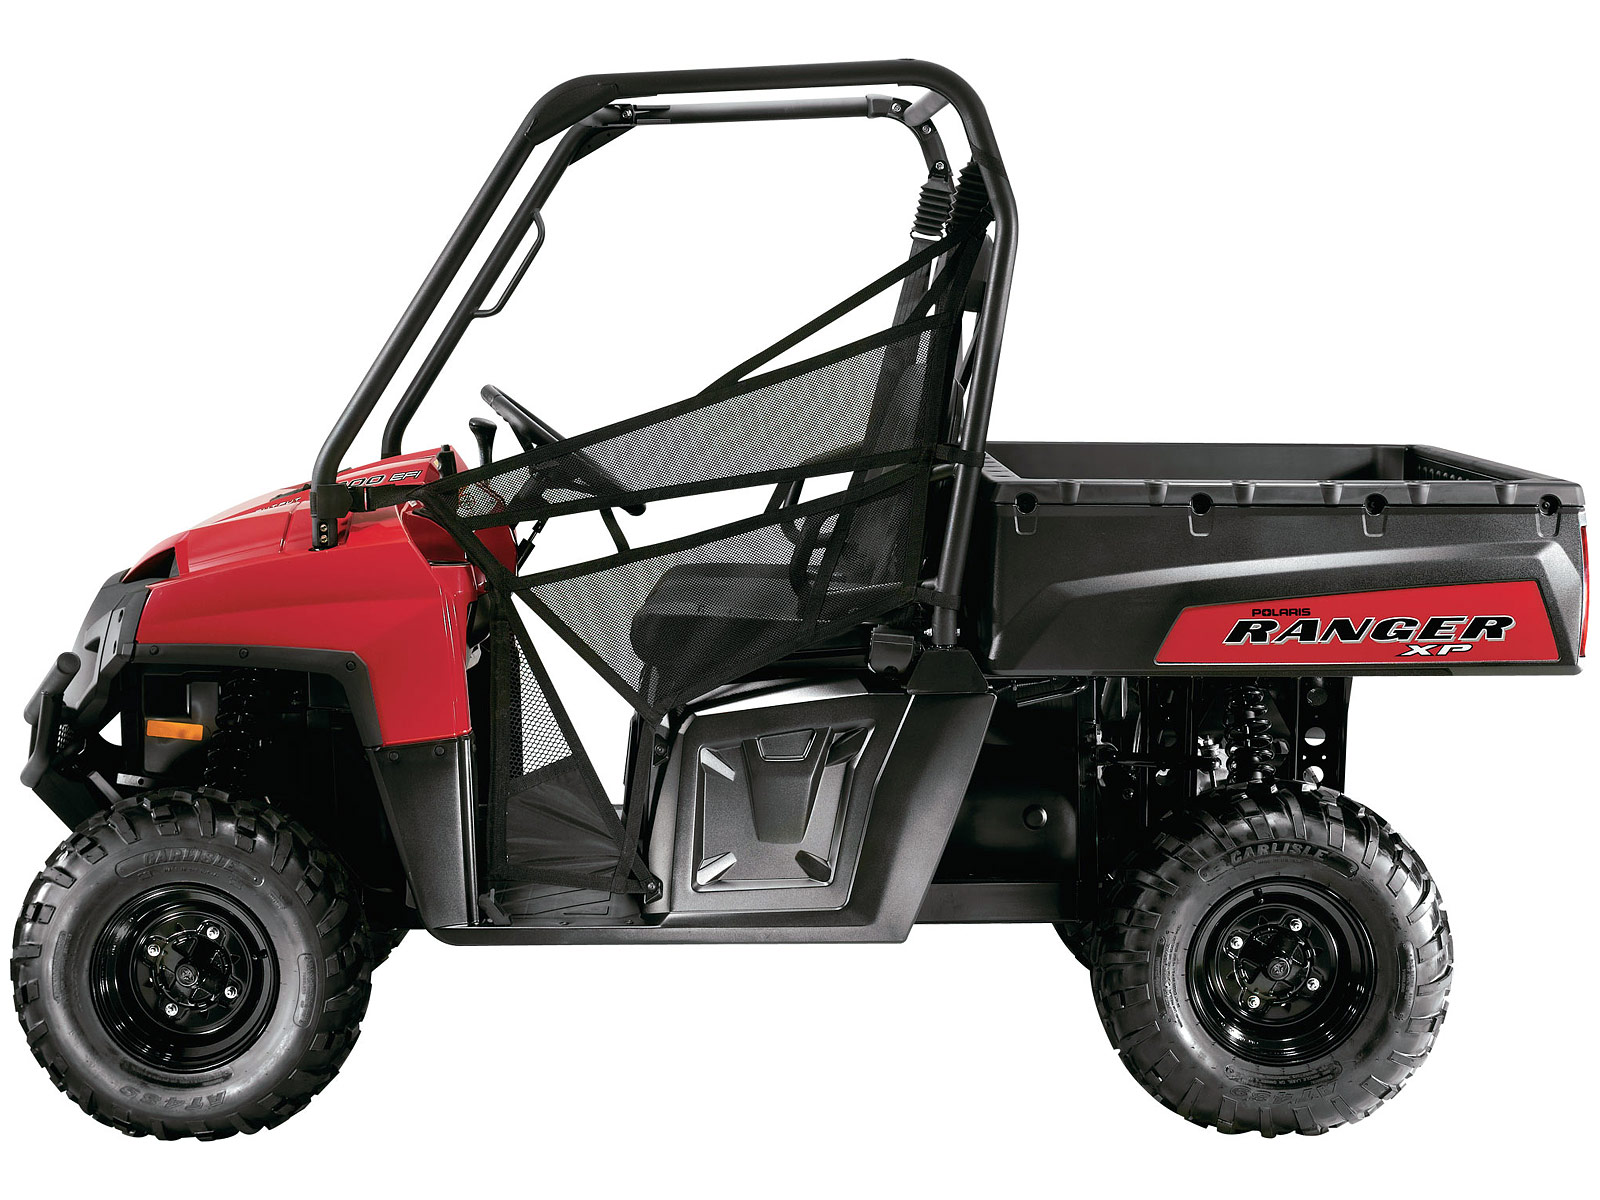 Polaris ranger photo - 5